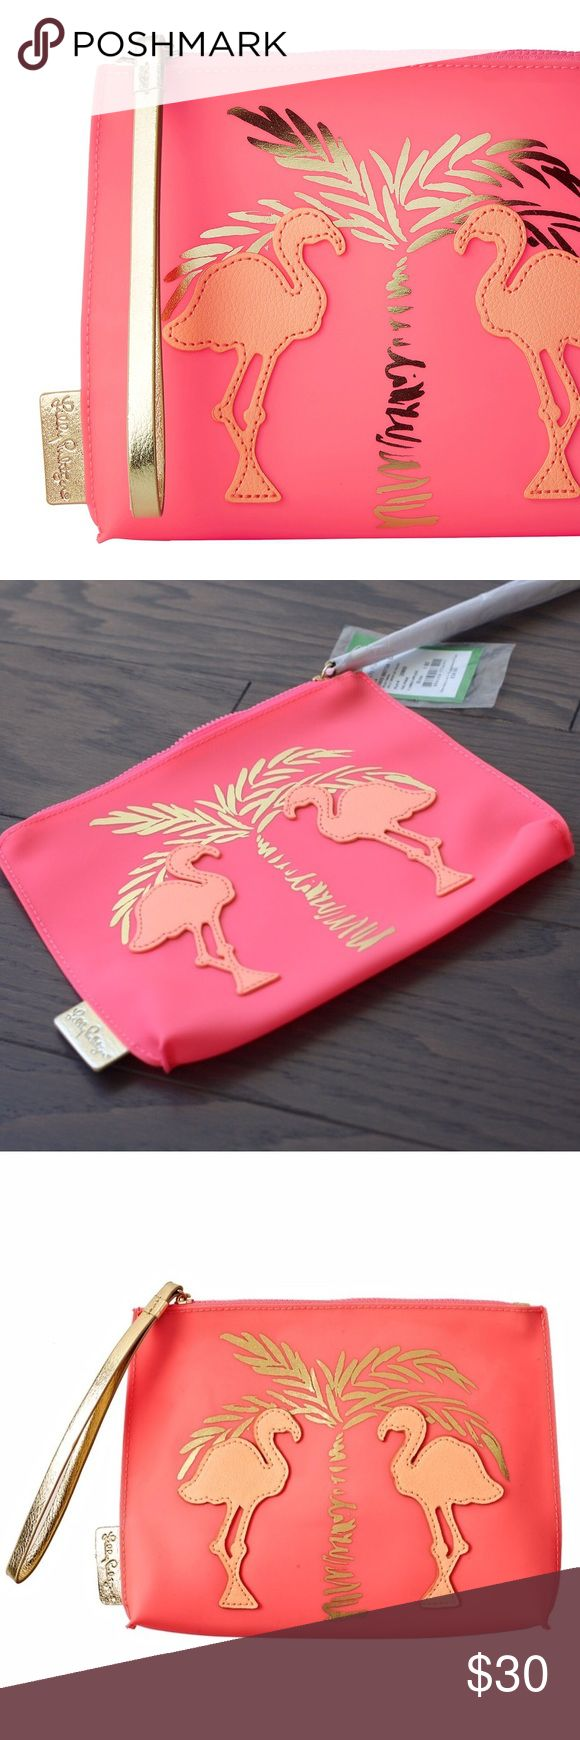 """Lilly Pulitzer Jelly Wristlet Pouch NWT 👛 PINK FLAMINGO design • neoprene jelly pouch with appliqué detail • 8.5""""w x 6.5""""h • new with tags 🏷 • semi-opaque jelly PVC • style # 25800 • photo credit 📷 Lilly Pulitzer for use of stock photos • sorry, no trades • price is firm • comment below with any questions! 👛 Lilly Pulitzer Bags"""